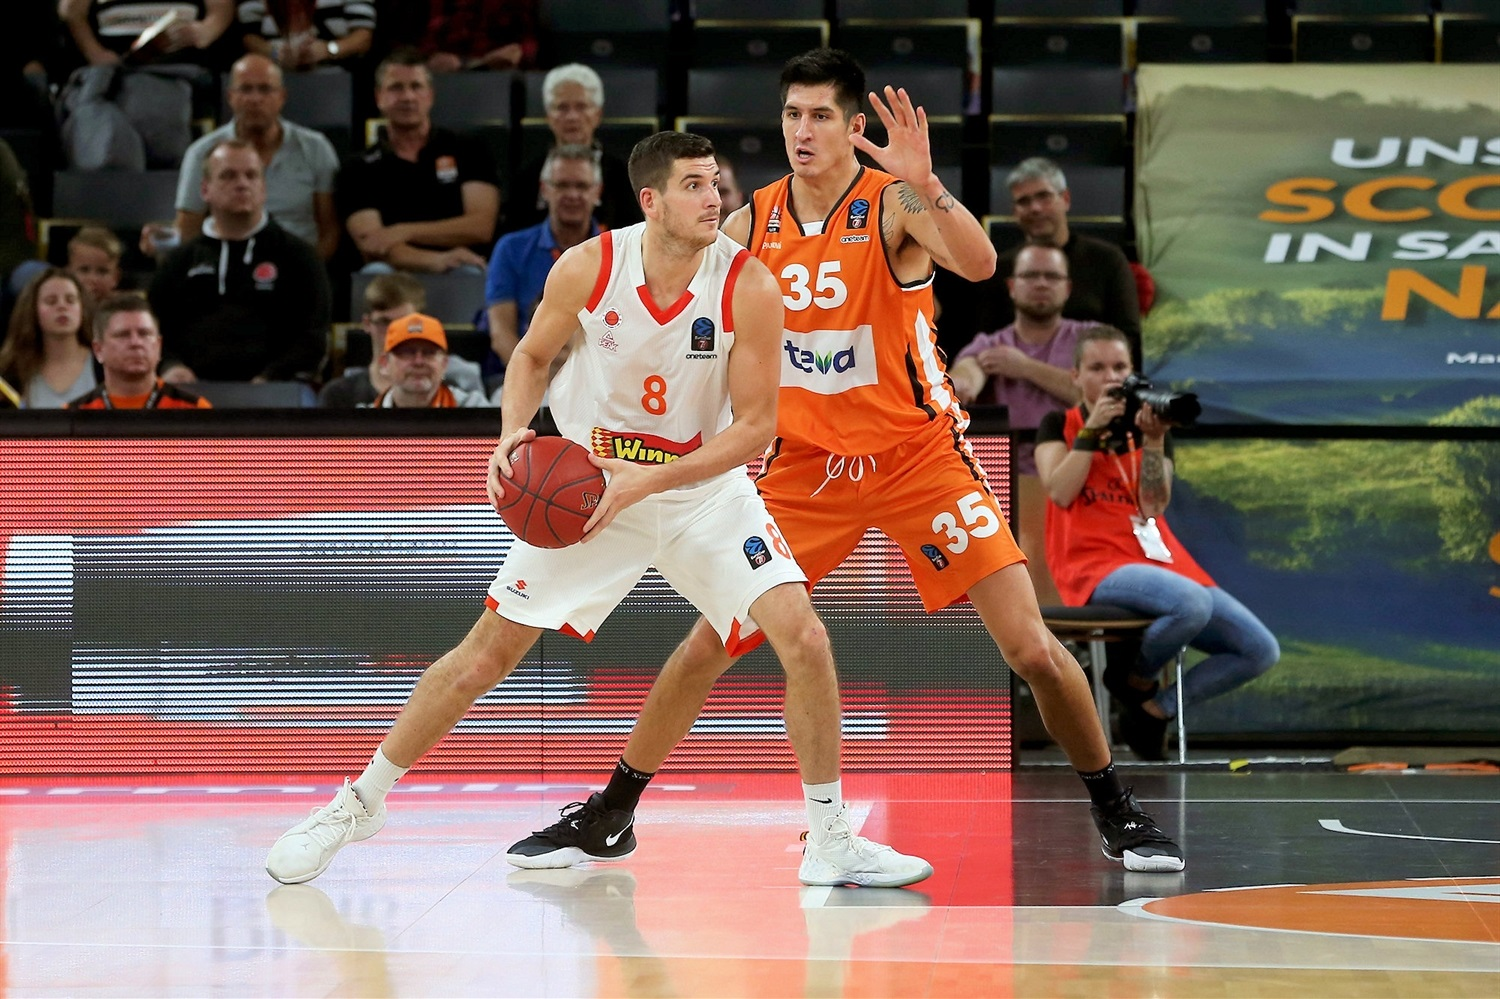 Frederic Bourdillon - Maccabi Rishon Lezion (photo Ulm - Harry Langer) - EC19